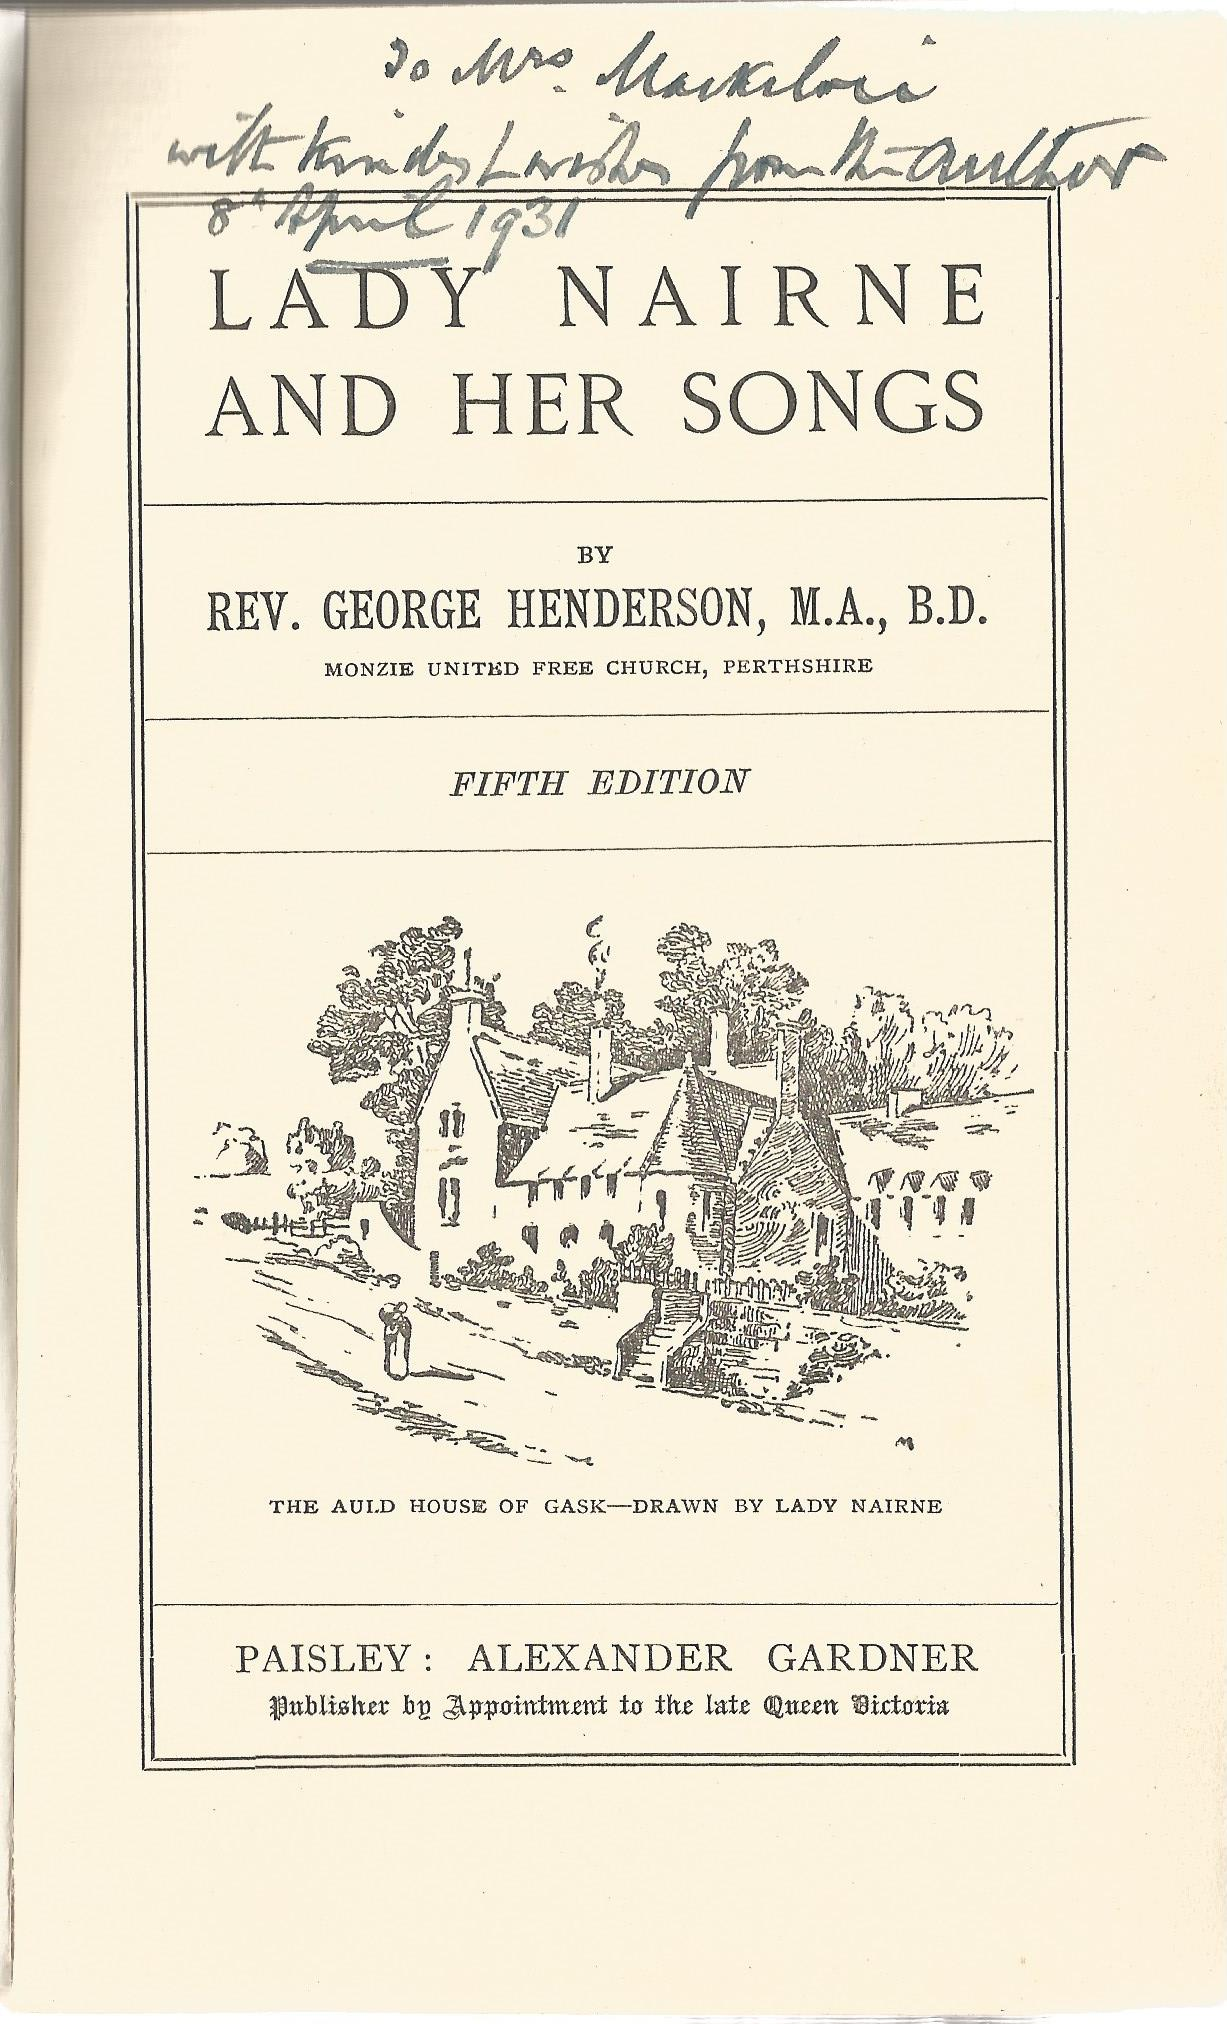 Rev George Henderson Hardback Book Lady Nairne and Her Songs signed by the Author on the Title - Image 2 of 2